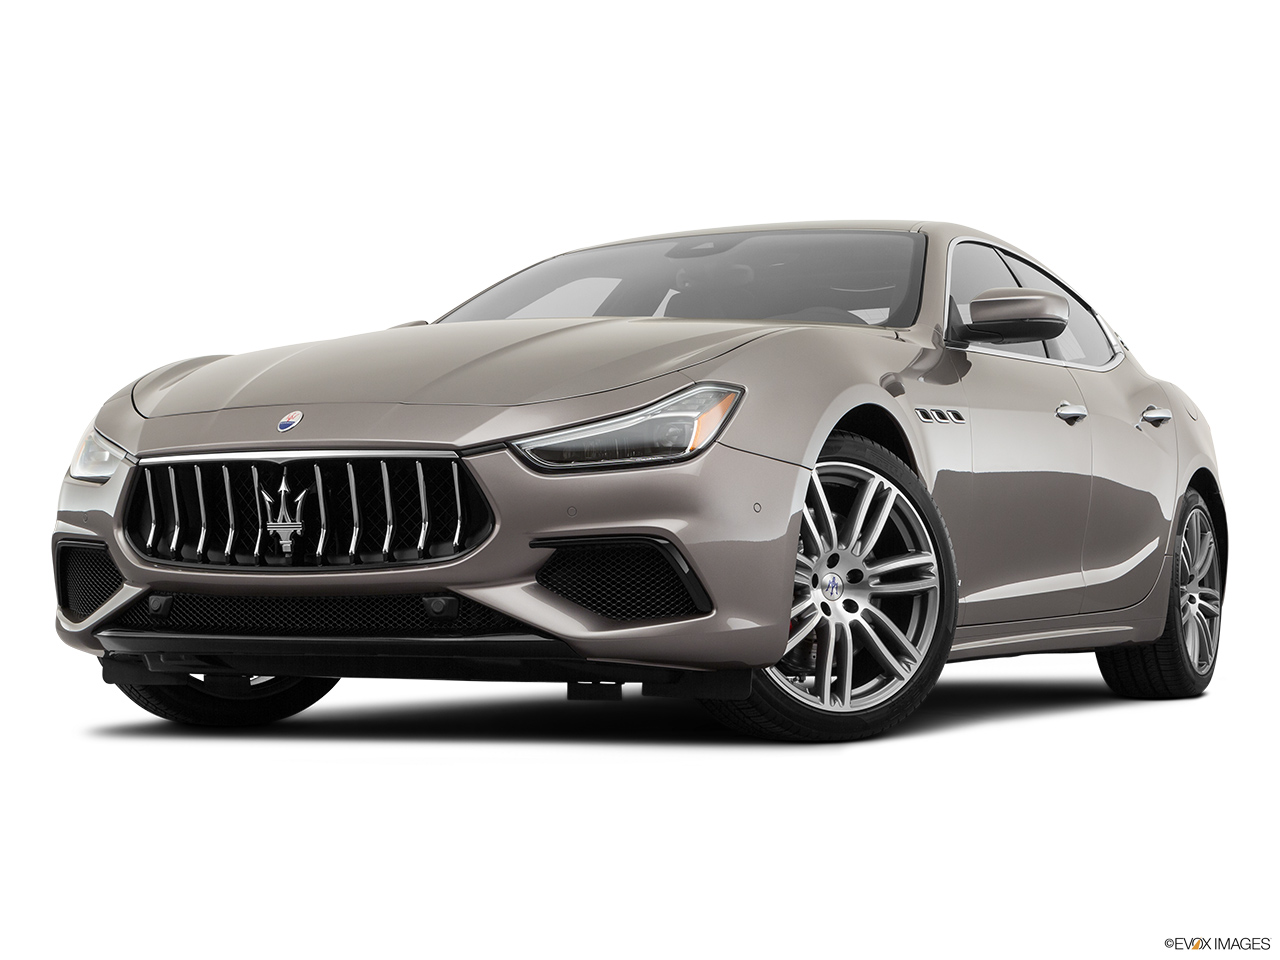 2019 Maserati Ghibli S Gransport Front angle view, low wide perspective.